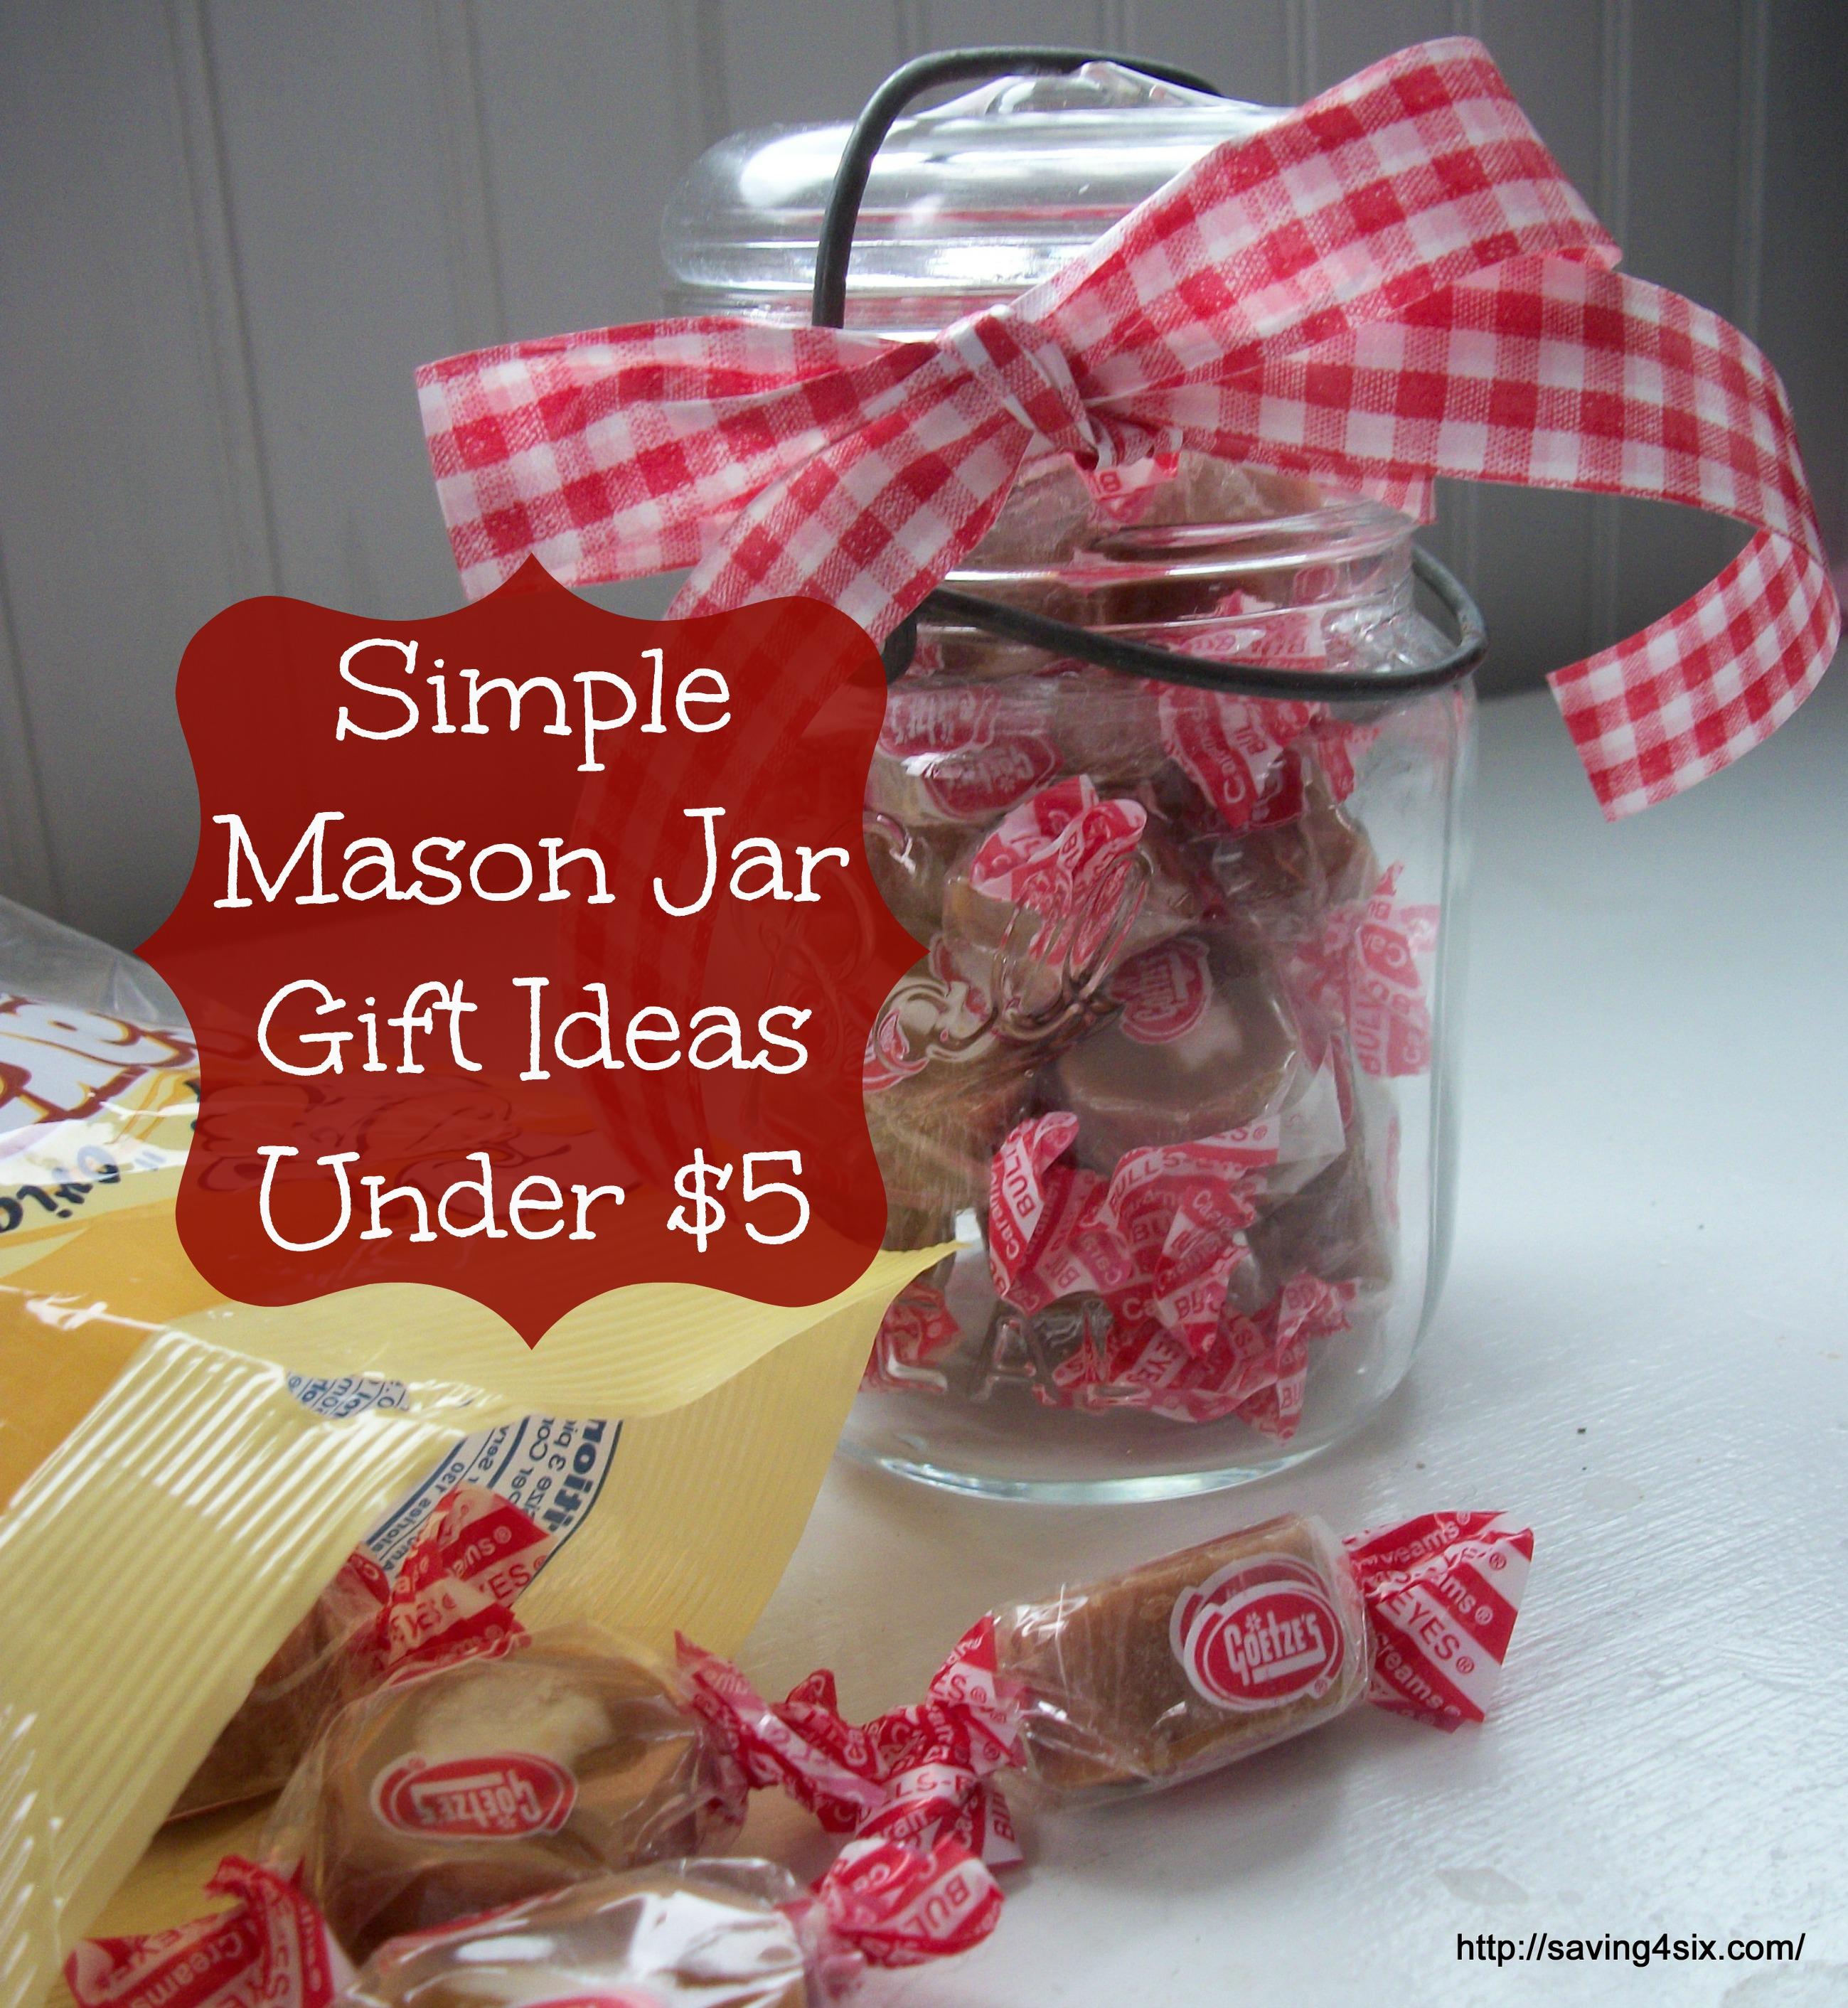 you get the idea right open a bag of candy or treats pour it in the jar tie a bow and voila a super simple cute gift for under 5 - Christmas Gifts Under 5 Dollars